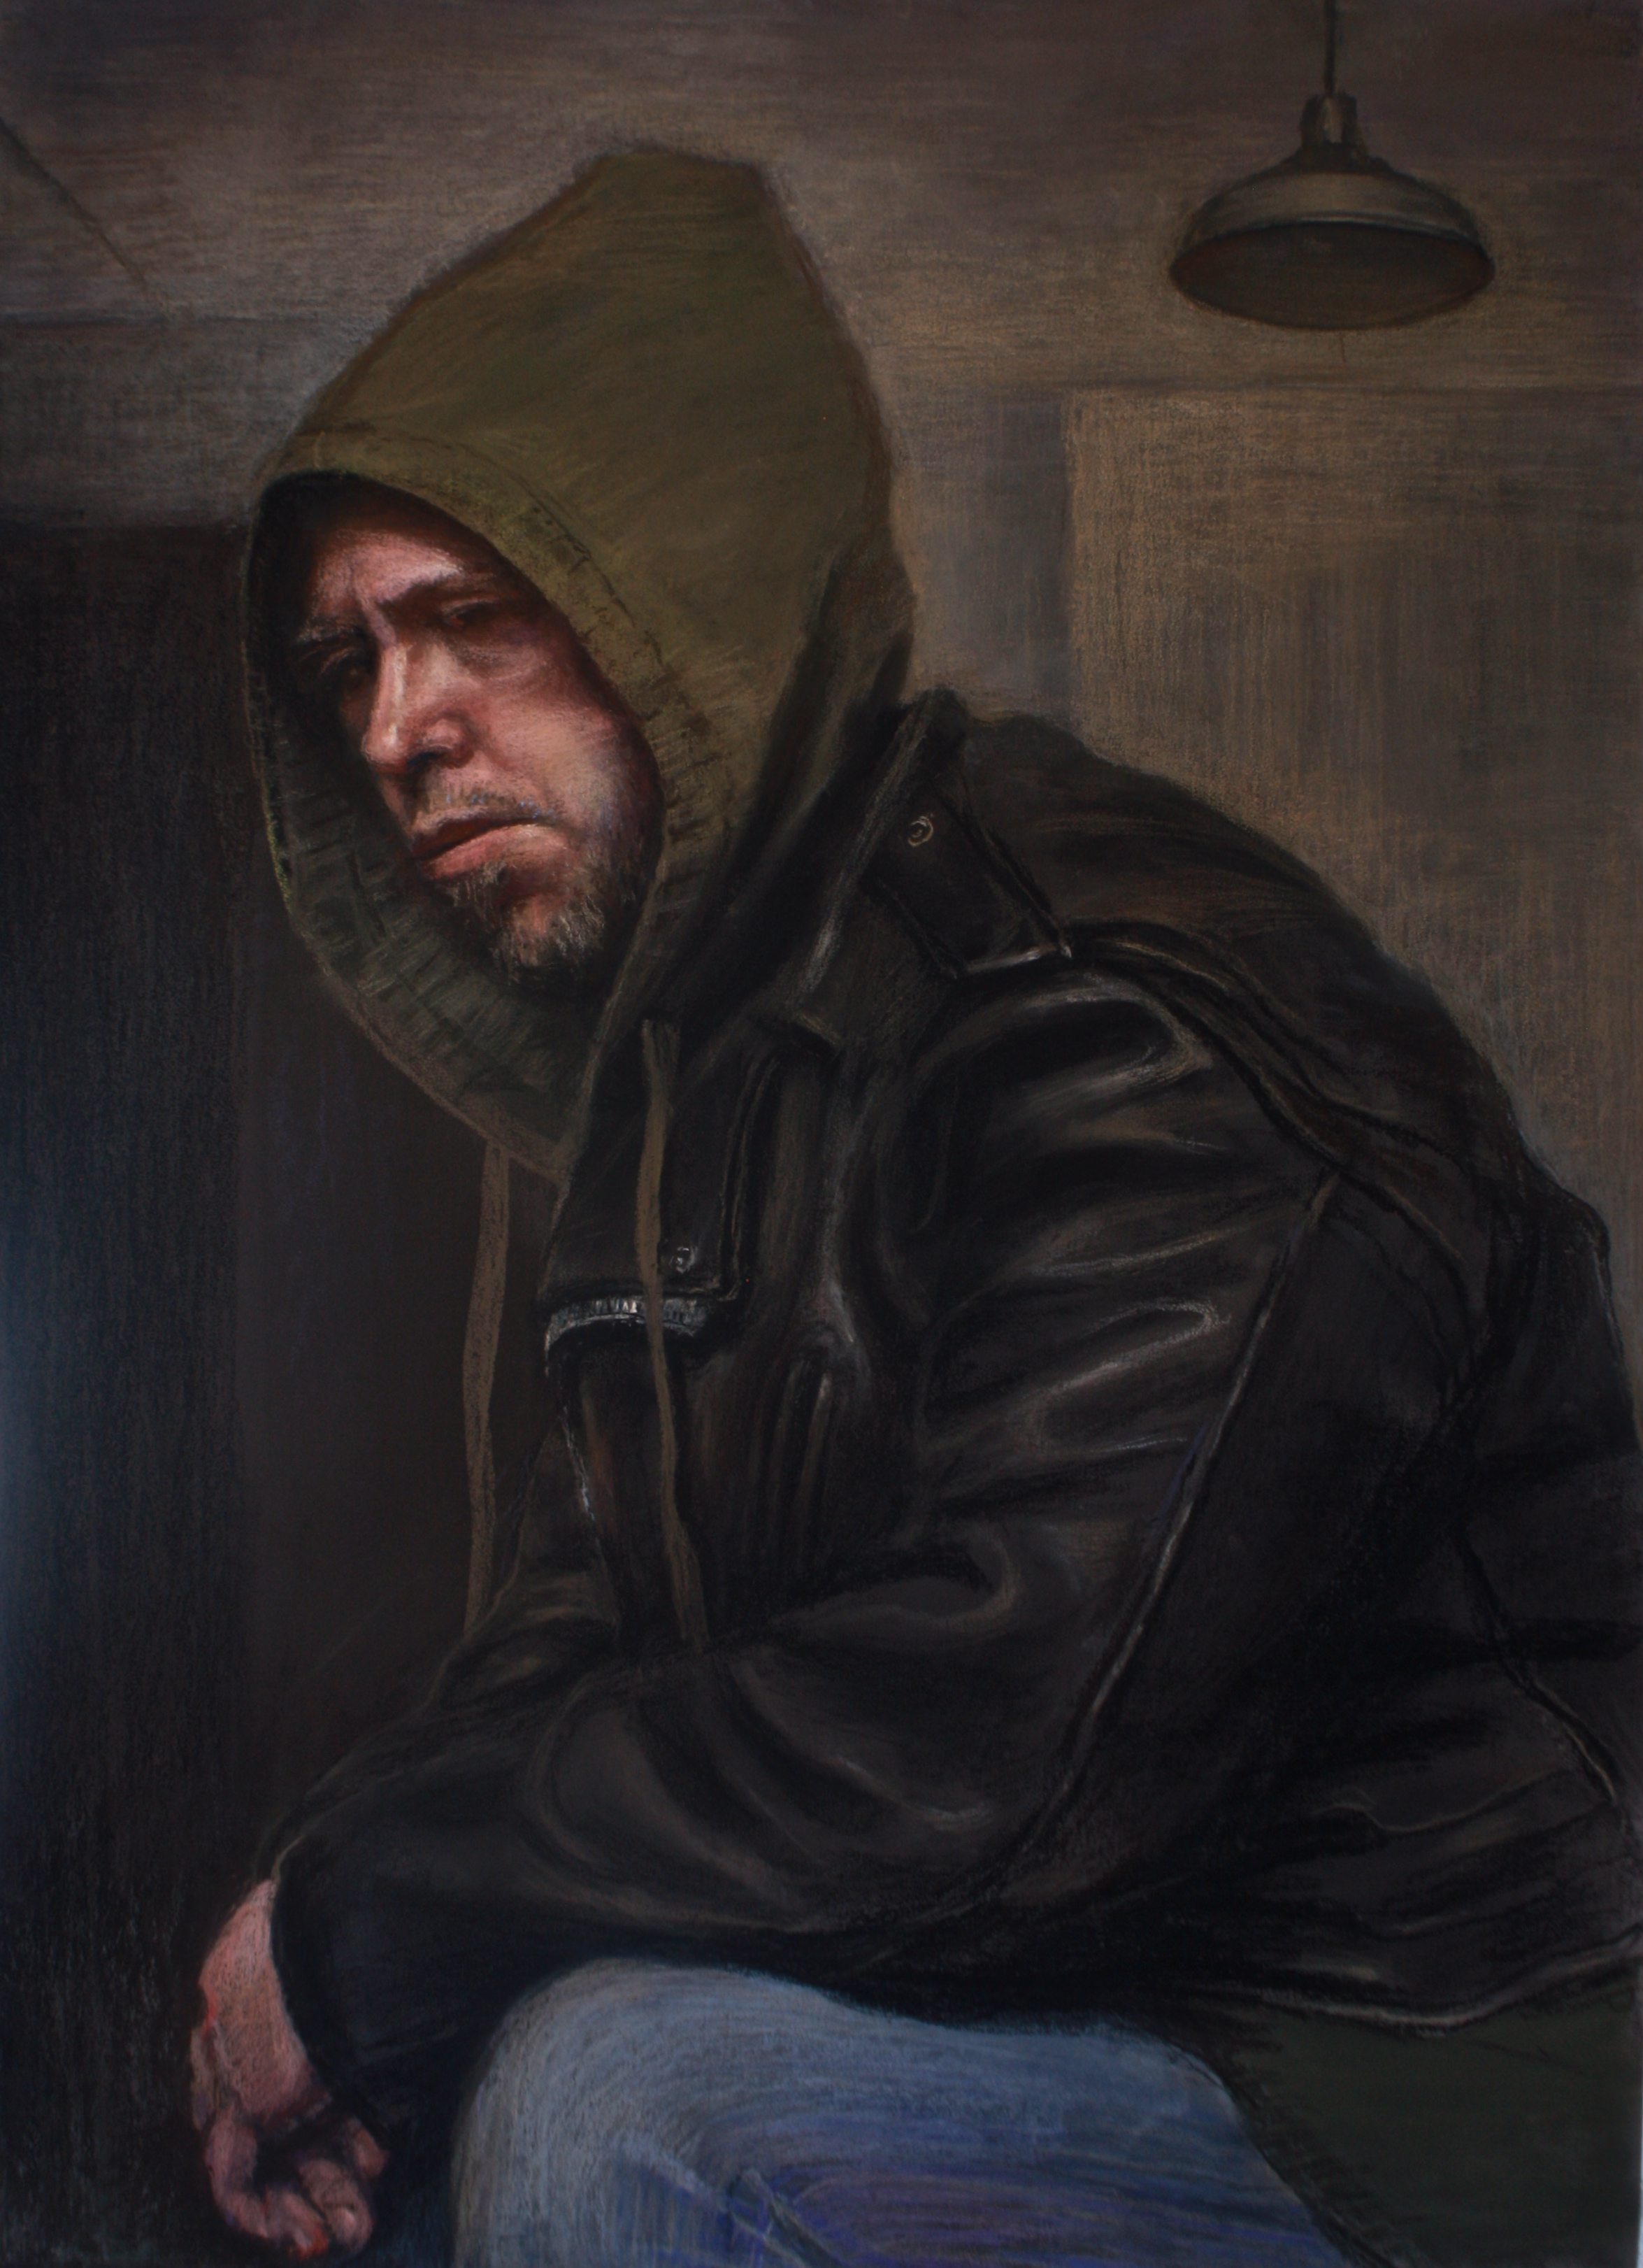 Man with Hoodie and Leather Jacket